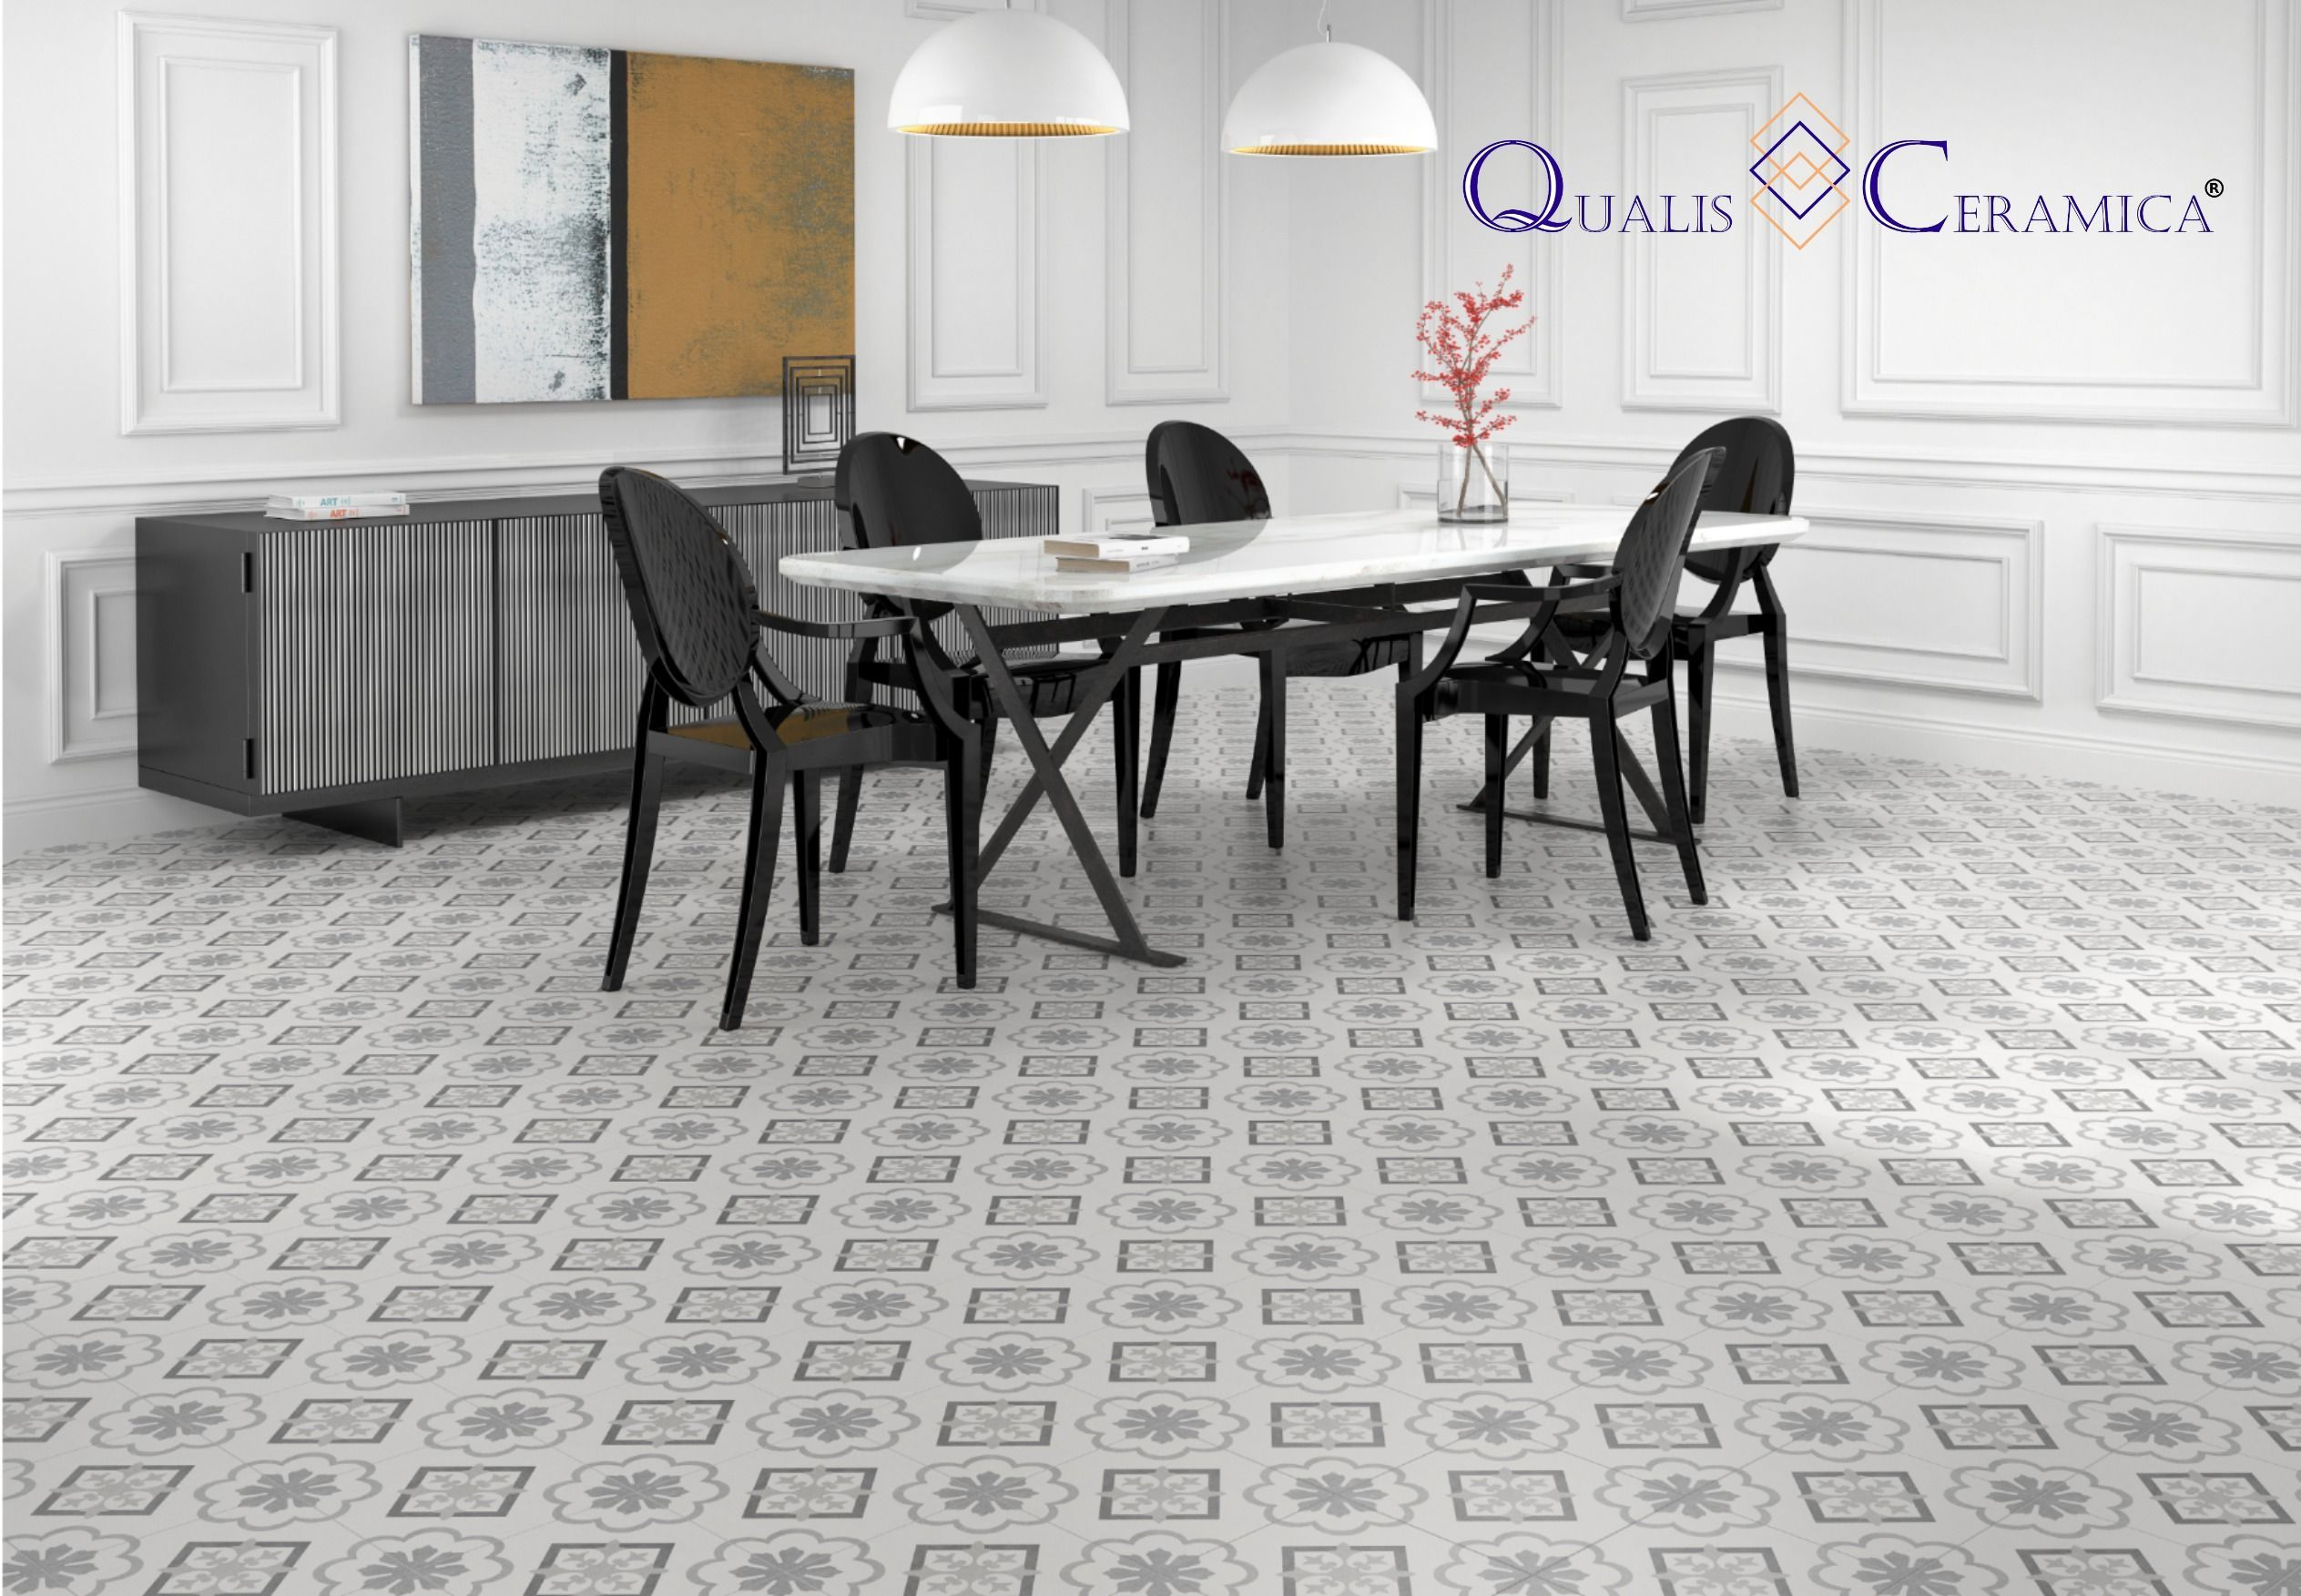 Qualis Ceramica Gibraltar Catalan Gris 10x10 Cement Look Porcelain Tile Floor And Wall Idea Qualis In 2020 Porcelain Floor Tiles Slip Resistant Tiles Tile Design